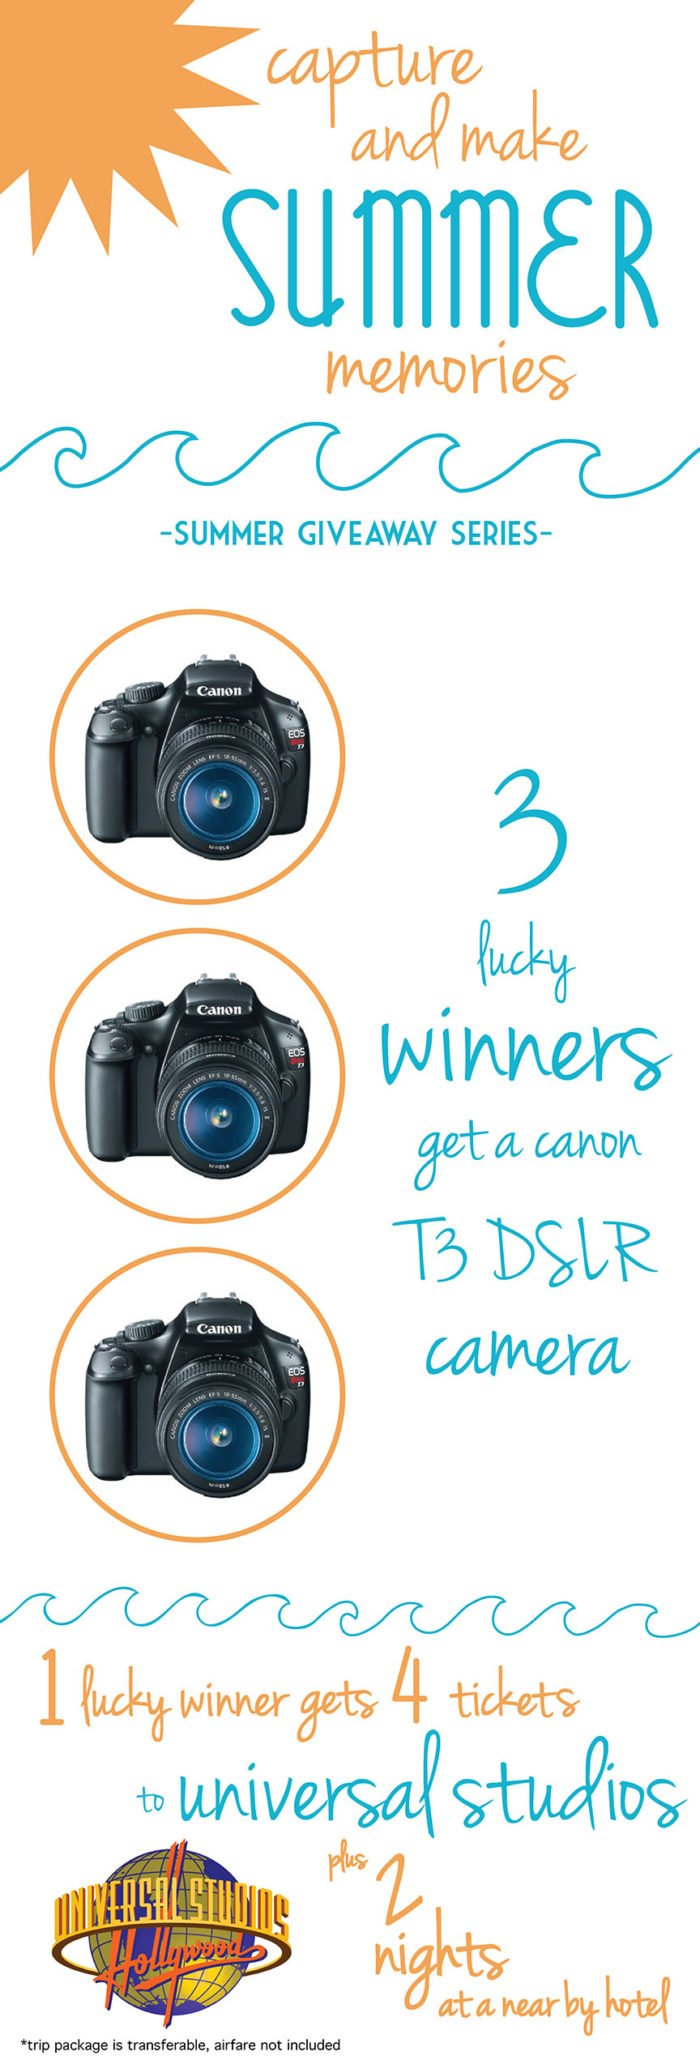 canon camera giveaway 2019 win a canon dslr camera closed 6422